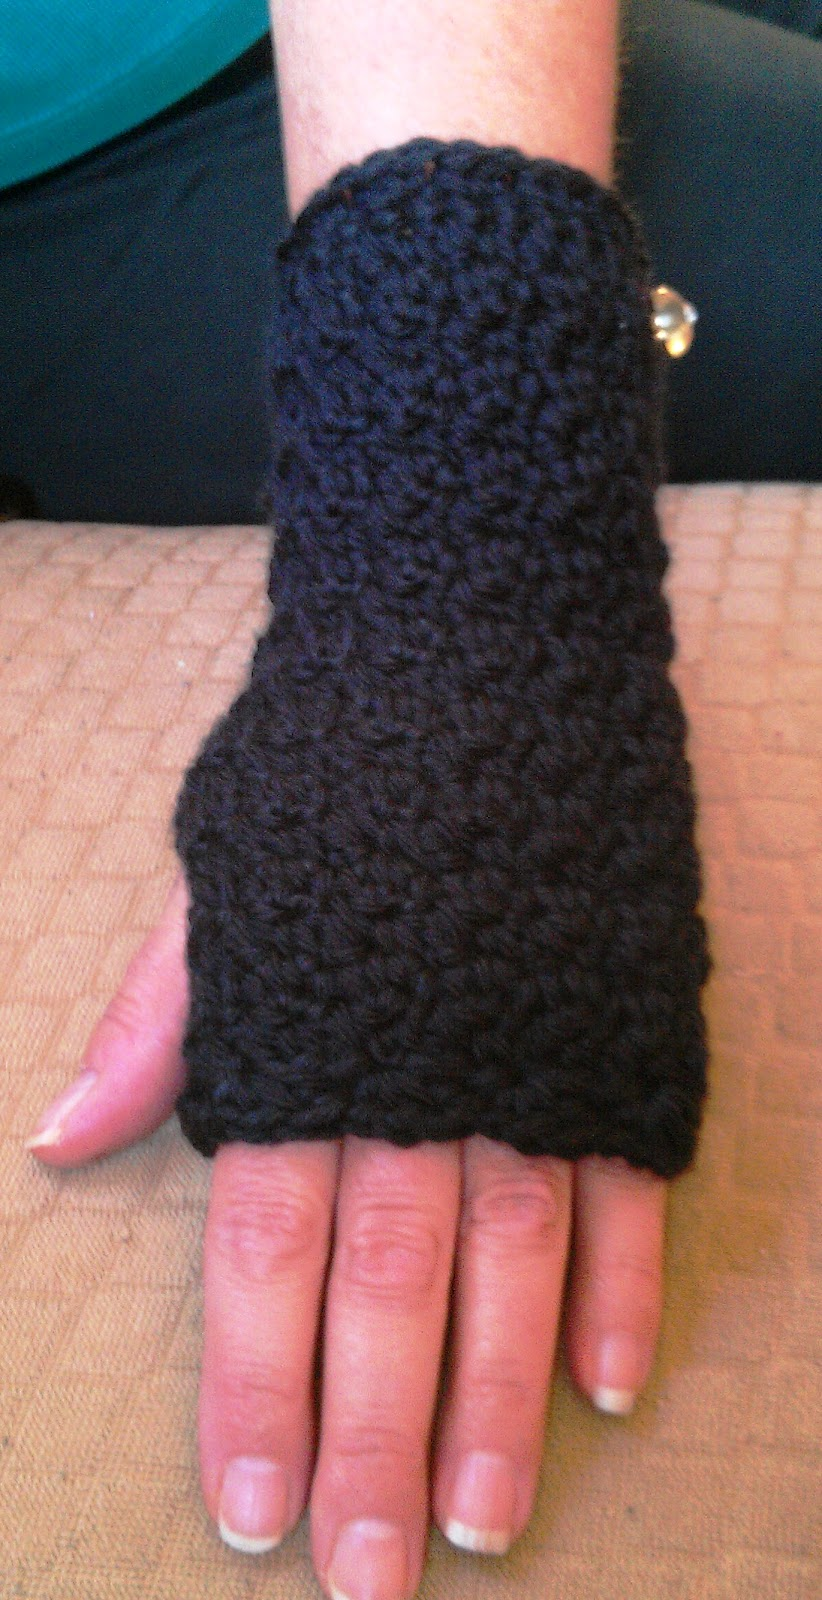 Hand Crochet Patterns : ... hand warmers that were made by my dear friend and crochet pattern